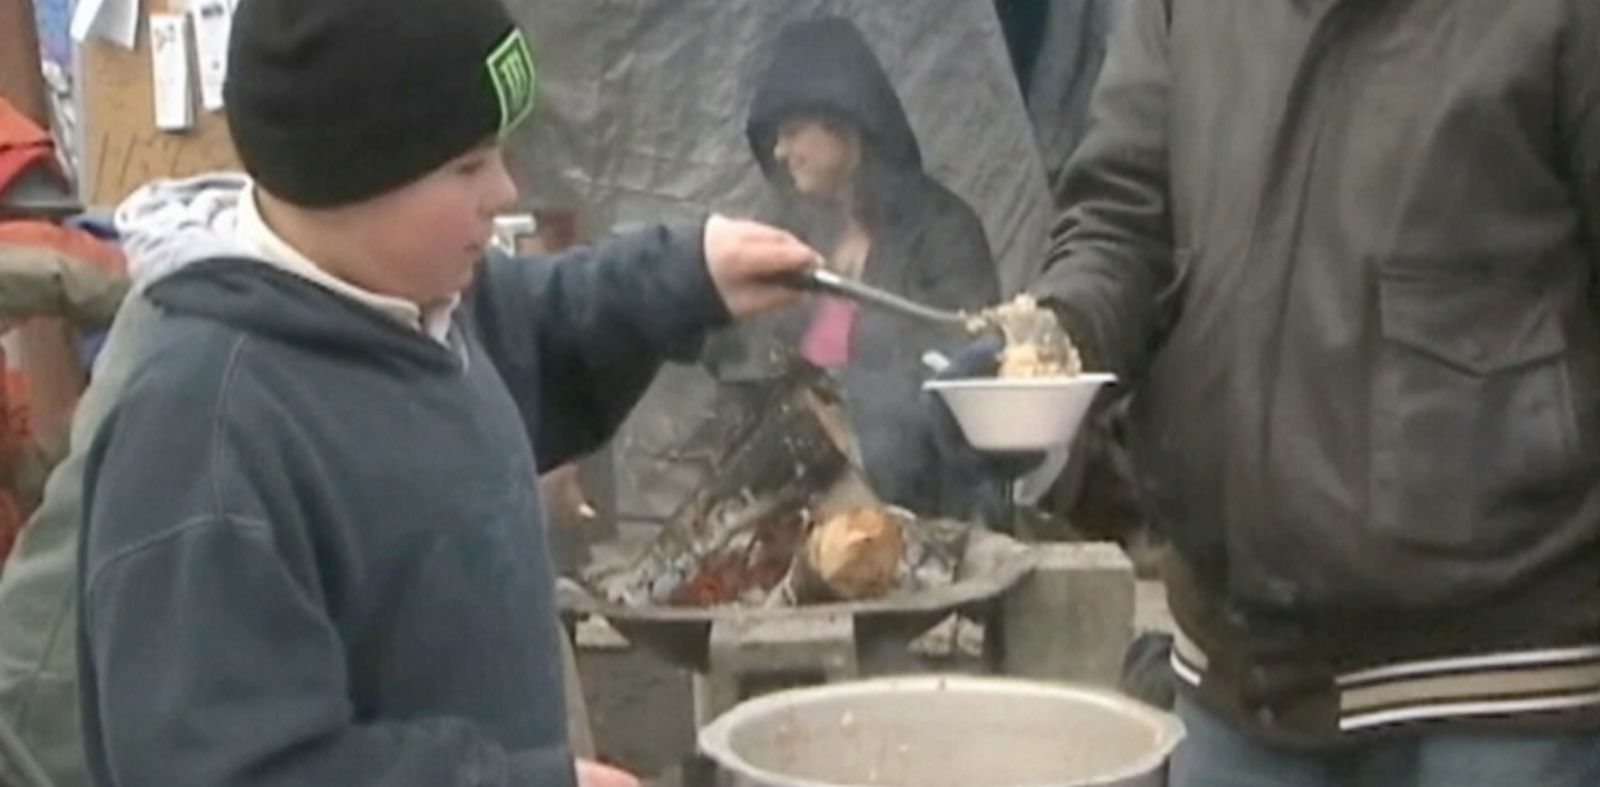 PHOTO: Keegan Keppner has brain cancer, but he has been helping to feed the homeless in Eugene, Oregon.